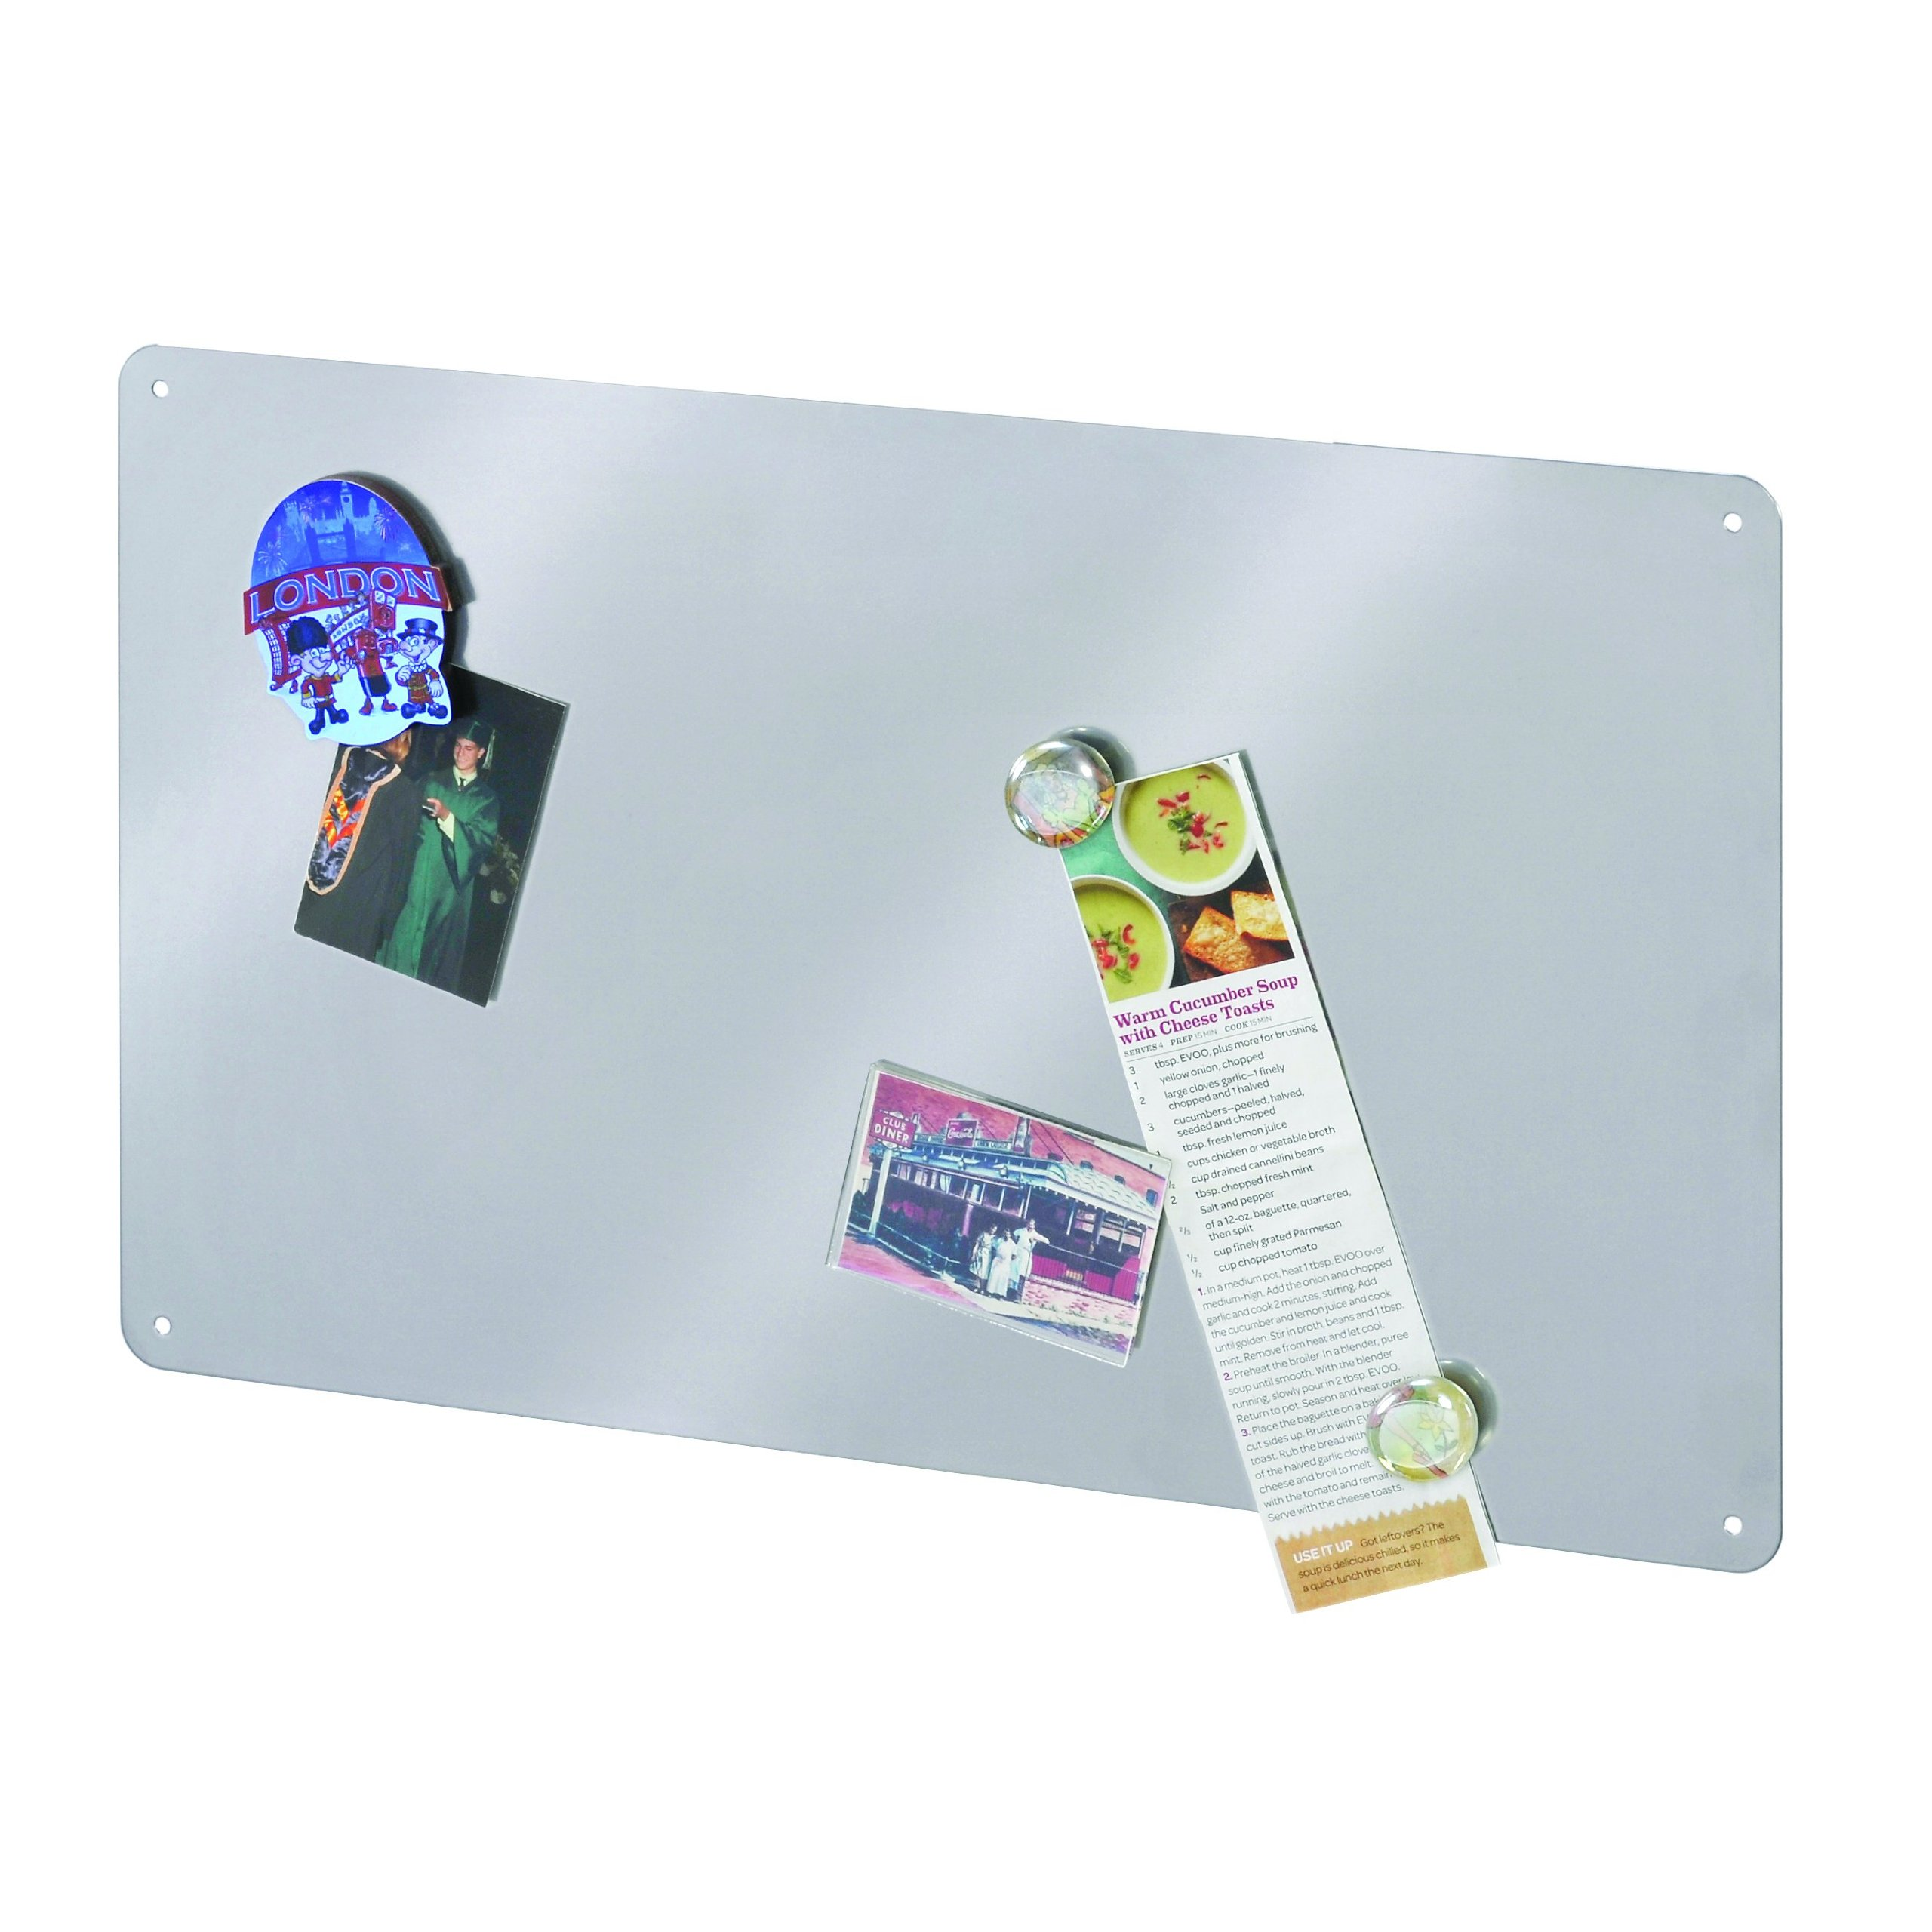 STEELMASTER Flat Style Magnetic Board, 18.5 x 11.5 Inches, Silver (270111950) by STEELMASTER (Image #2)